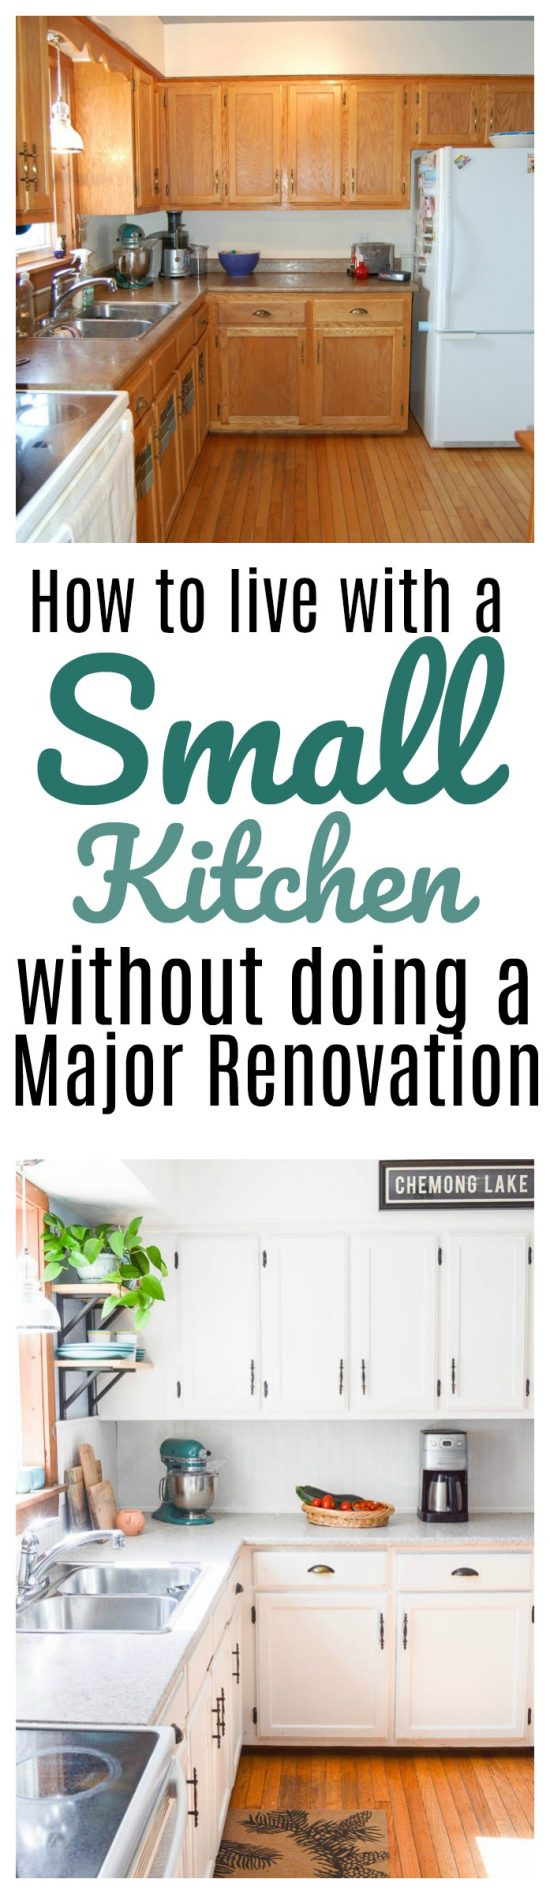 How to Live with a Small Kitchen Without Doing a Major Renovation ...